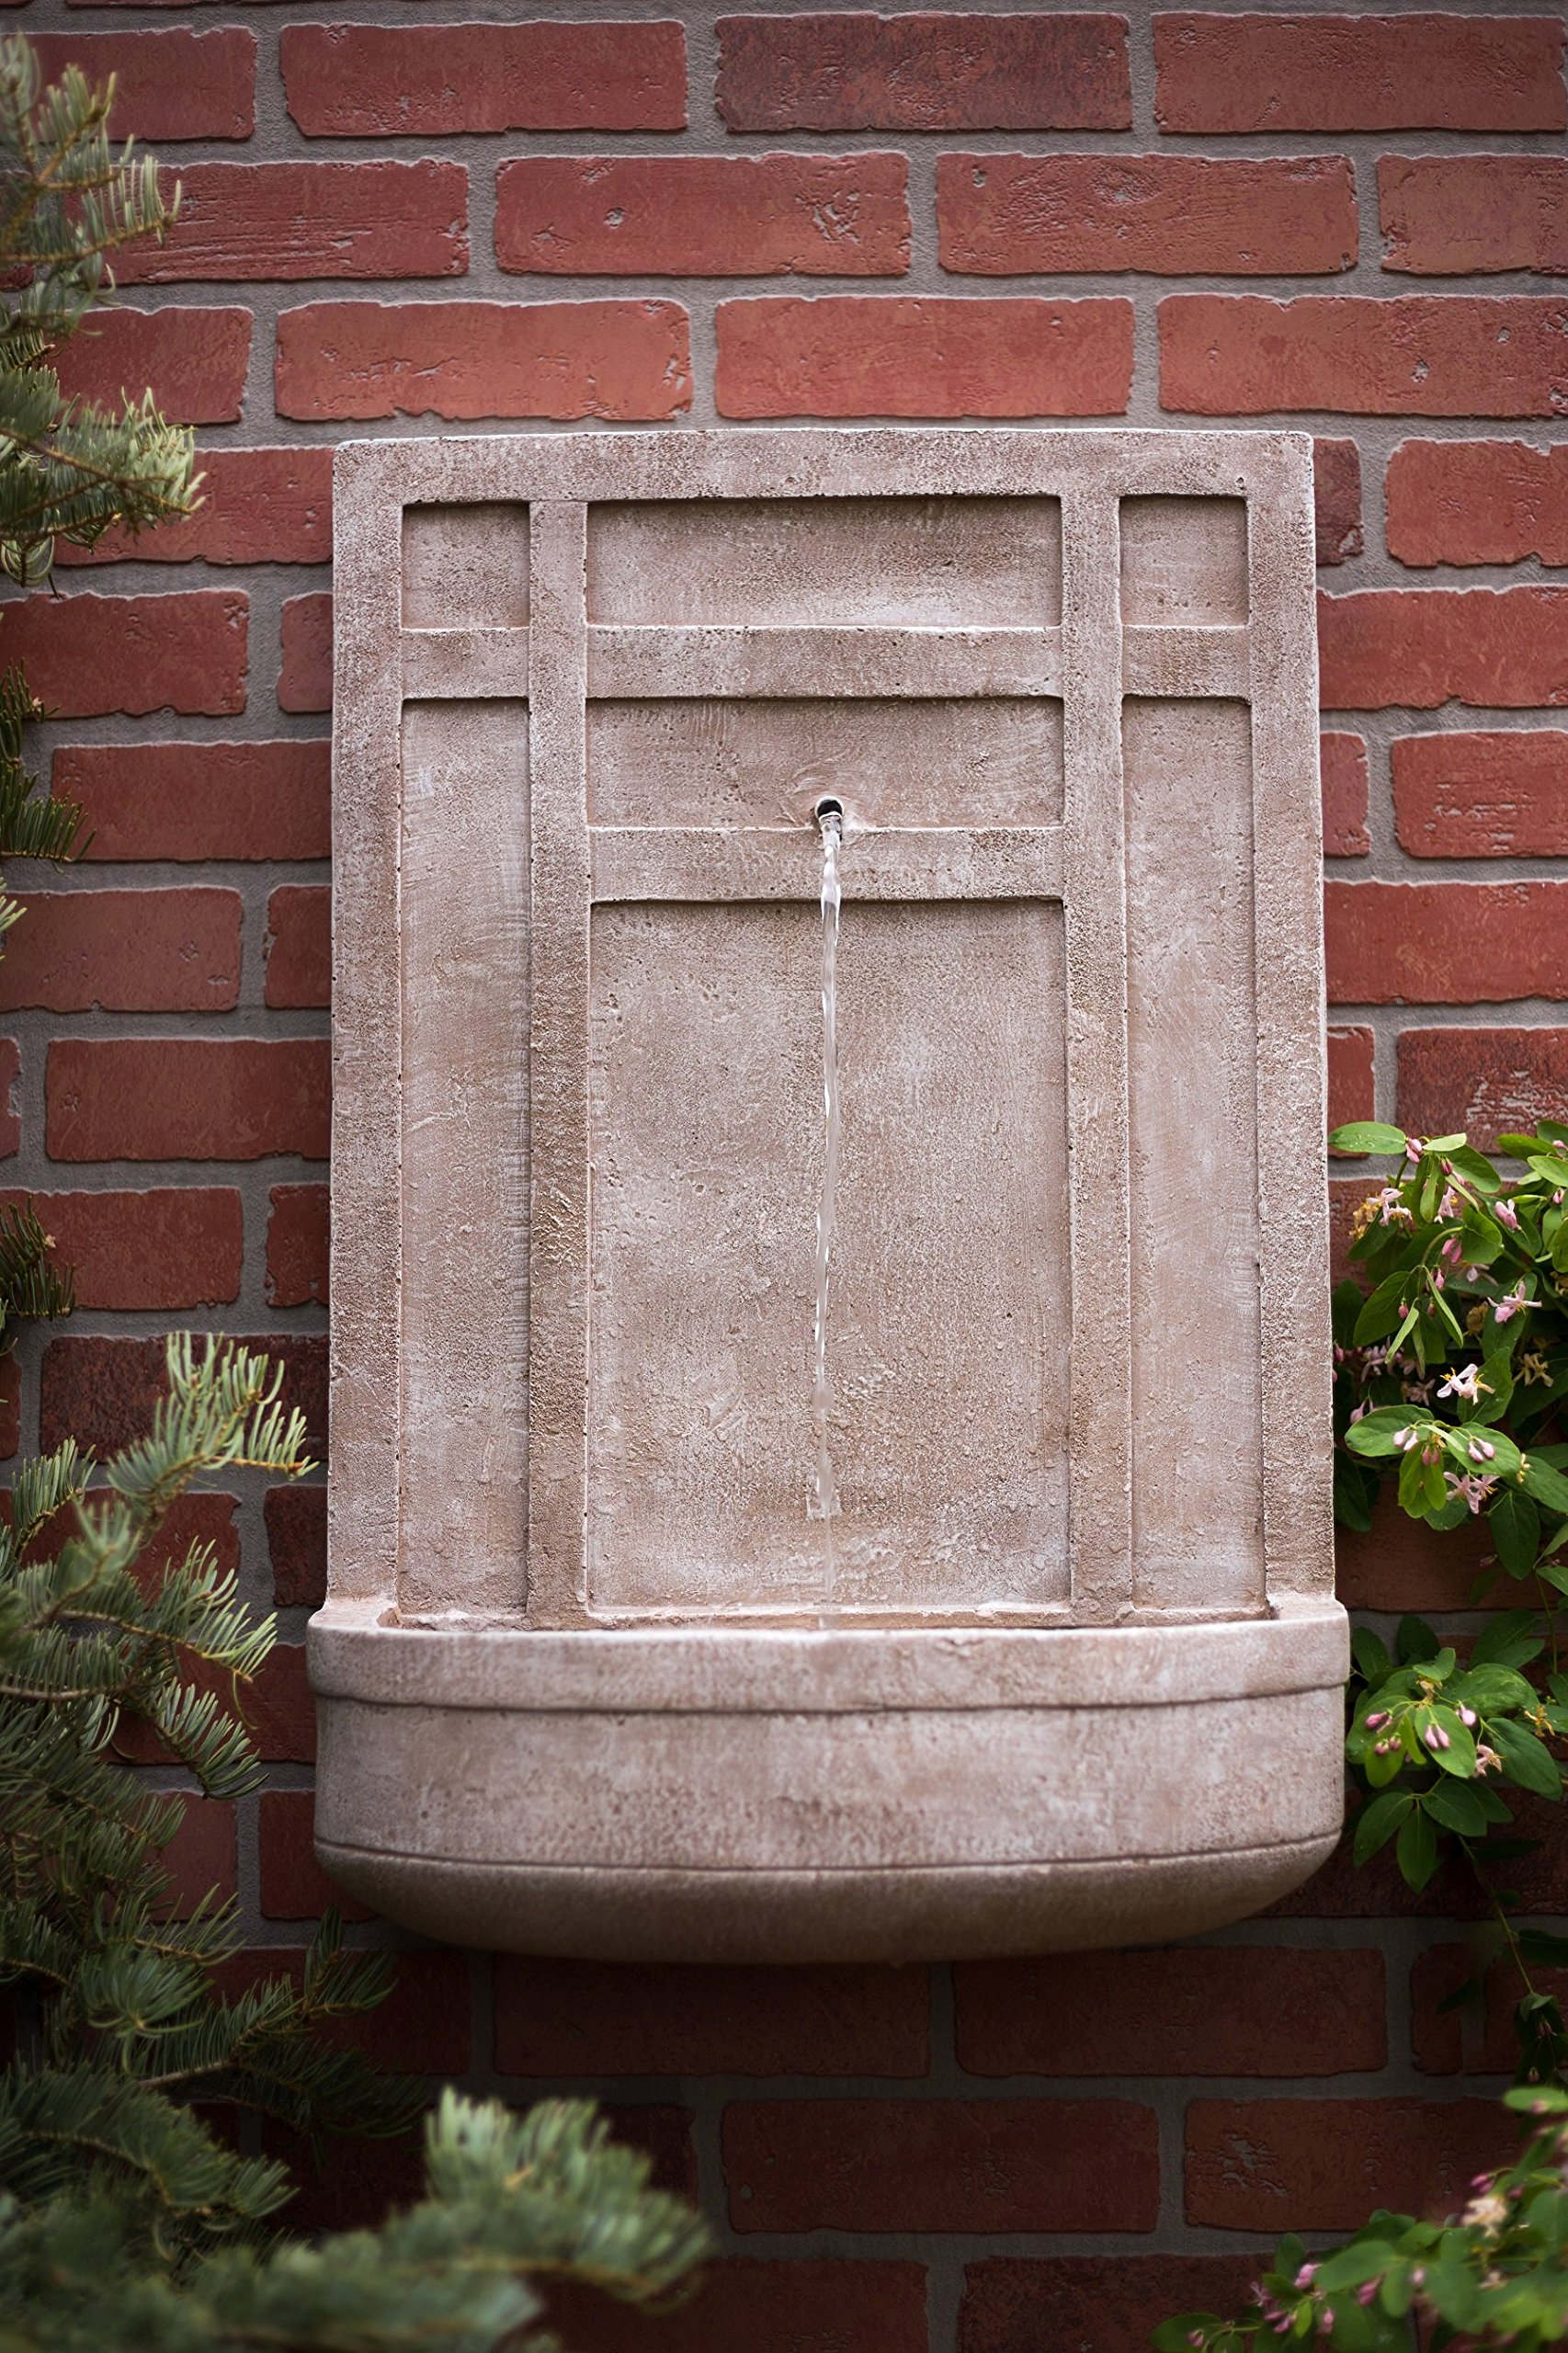 The Sicily - Outdoor Wall Fountain in Parchment Beige - Water Feature for Outdoor Living Space and Garden Enhancement